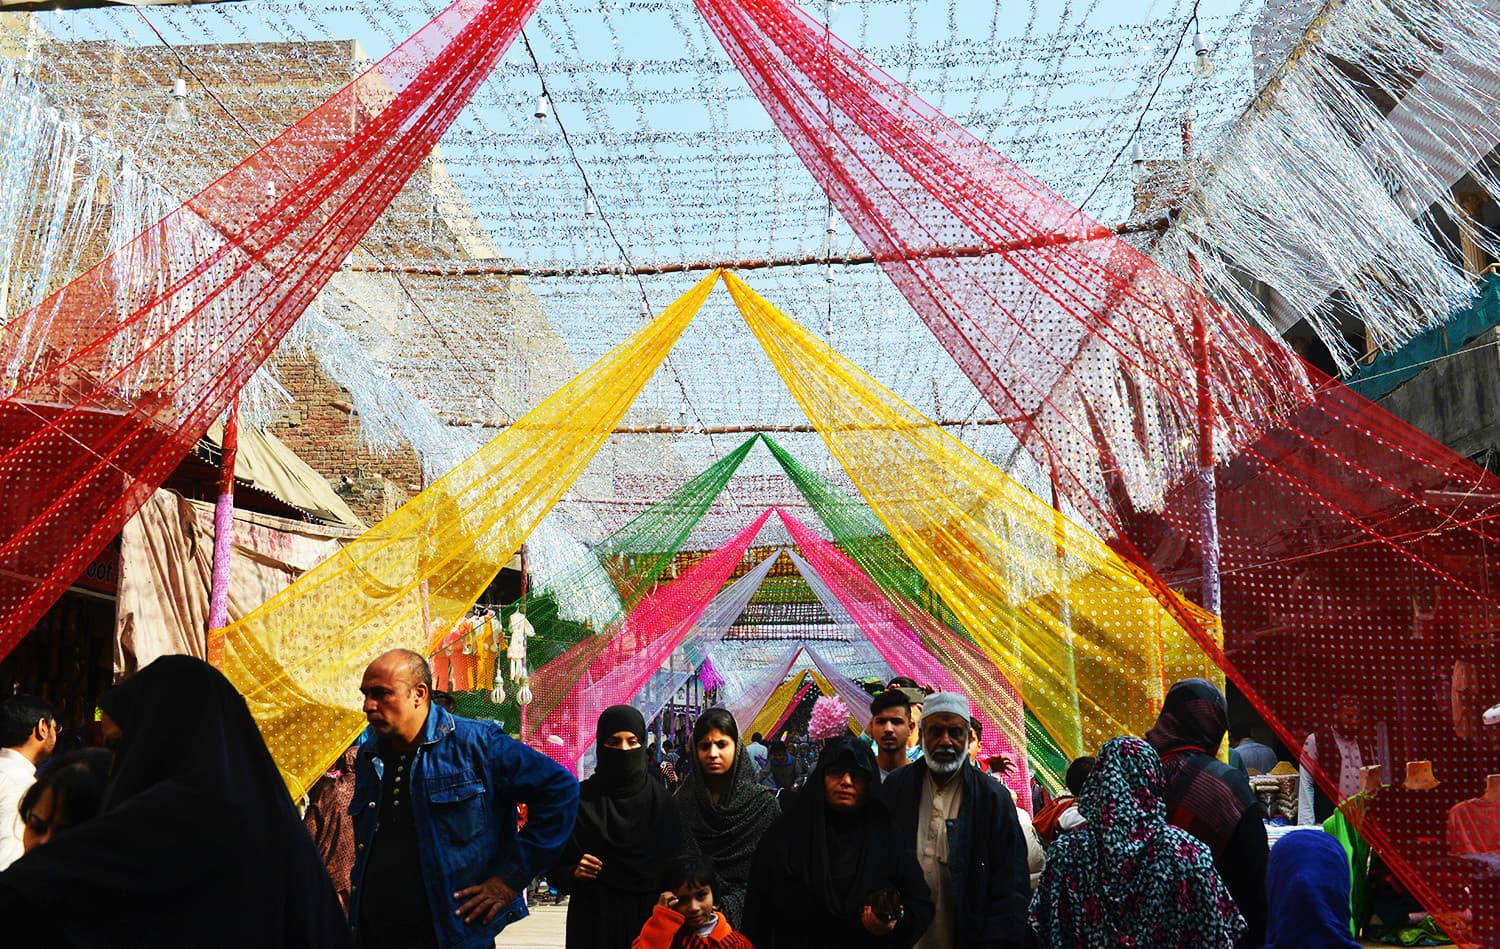 People walk through a decorated market on the celebration of Eid Milad-un-Nabi.—AFP